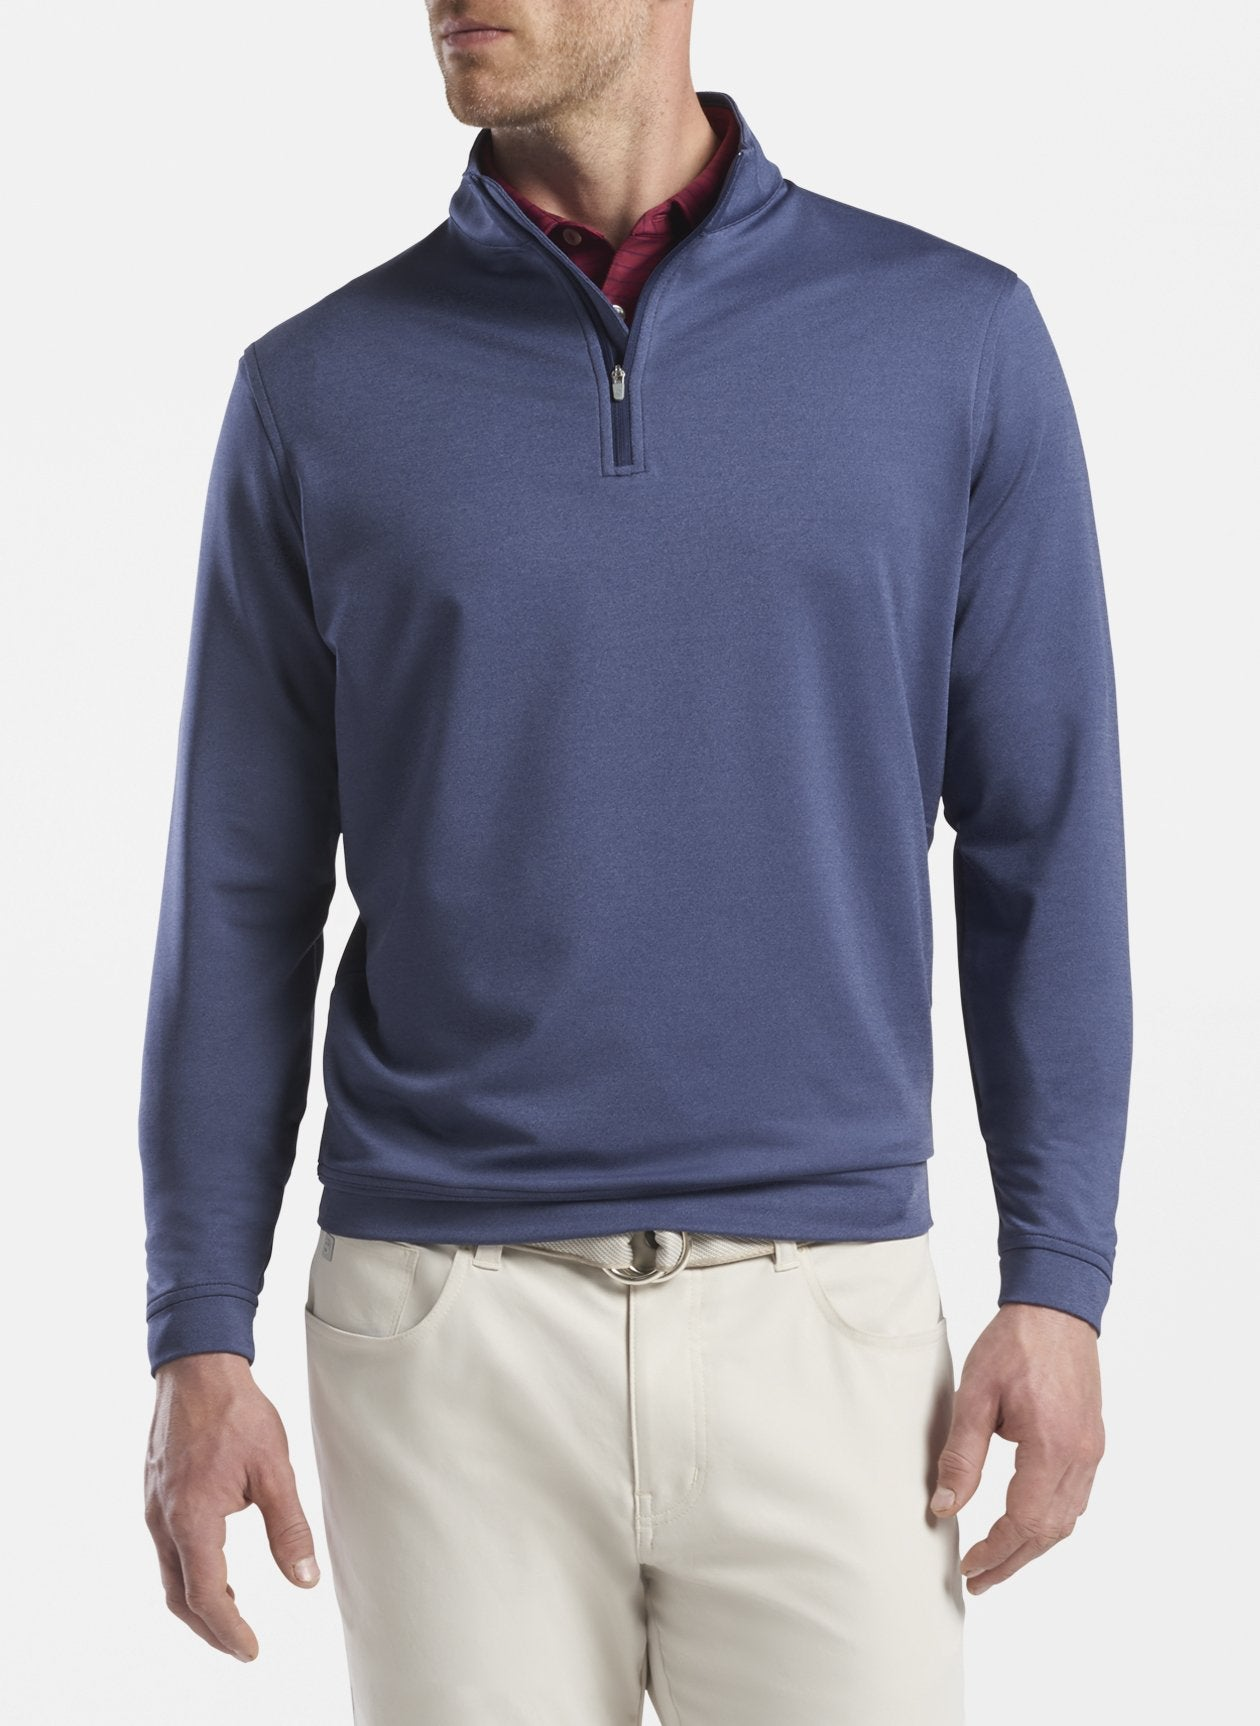 PETER MILLAR Men's Pullover NAVY / M Peter Millar Mélange Perth Performance Quarter-Zip || David's Clothing MF20EK40BN